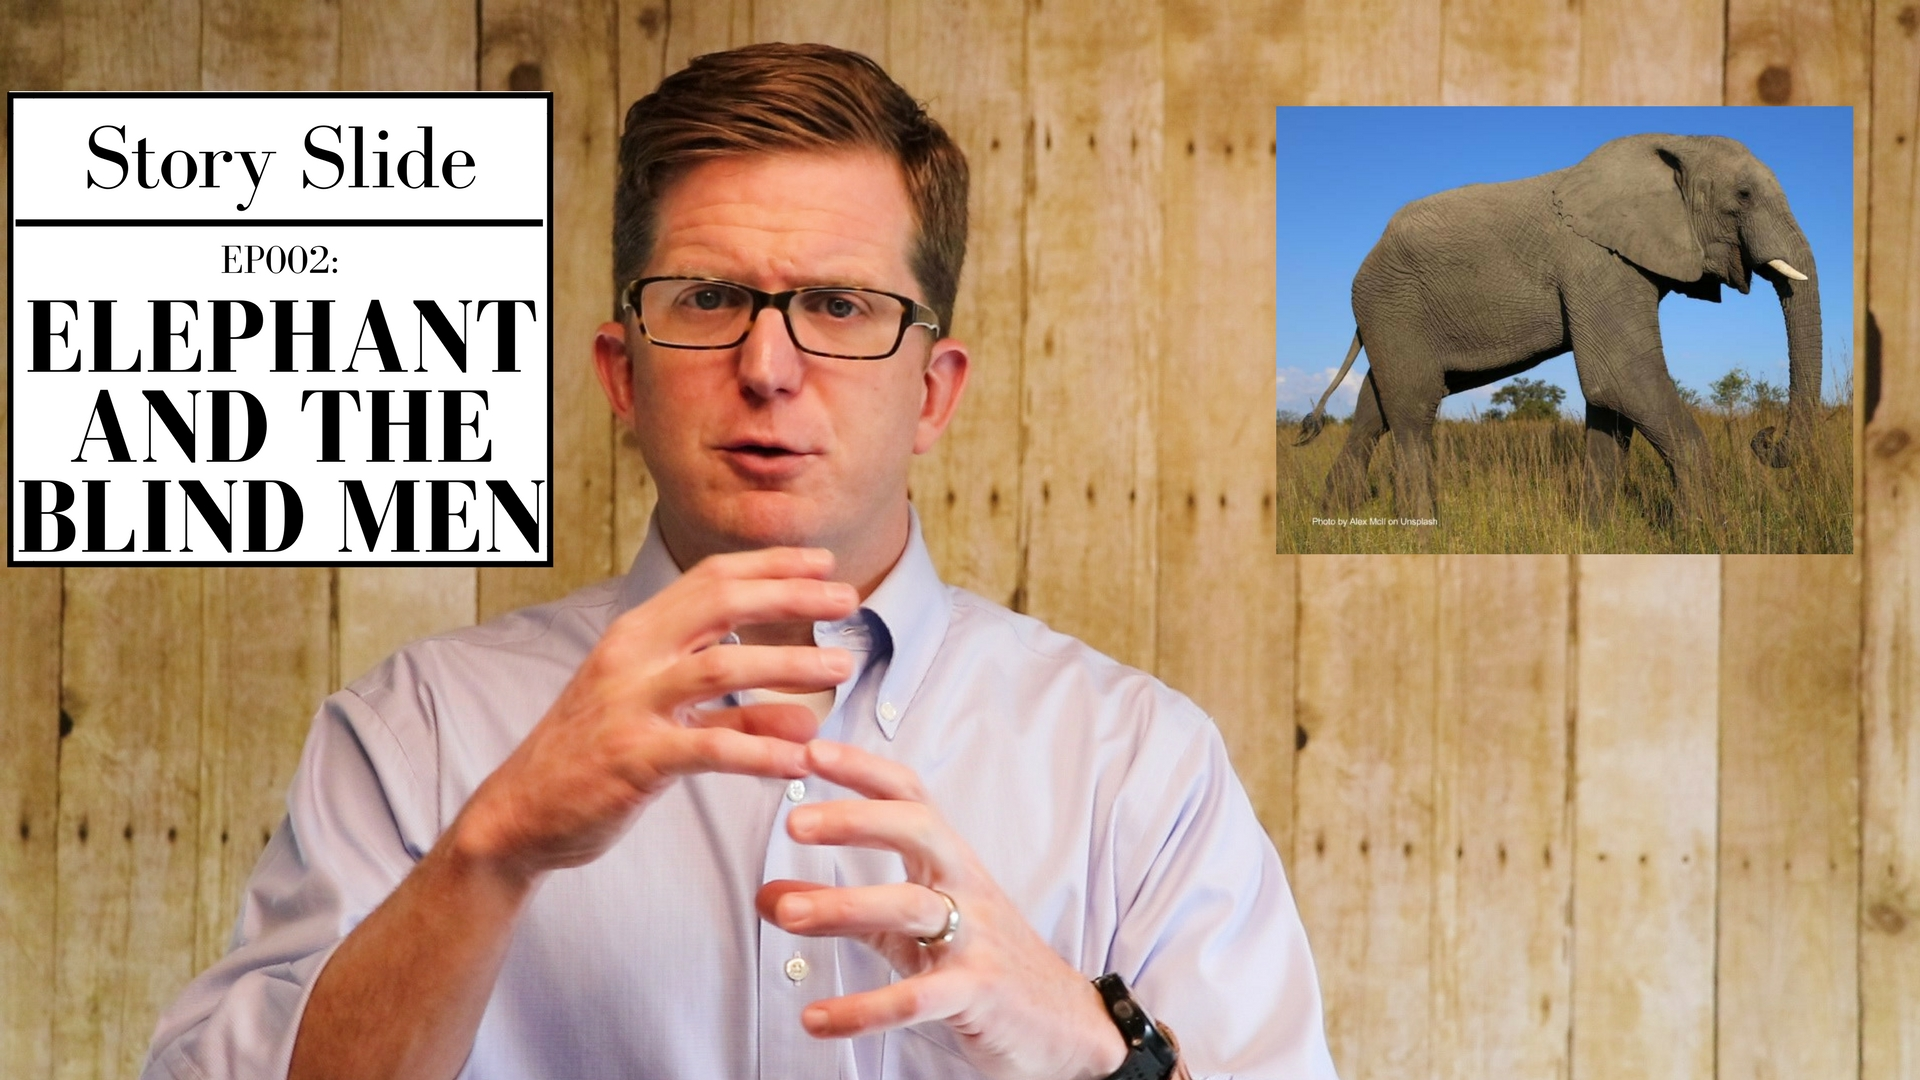 Ep002_Elephant and Blind Men_Thumbnail_vFINAL.jpg